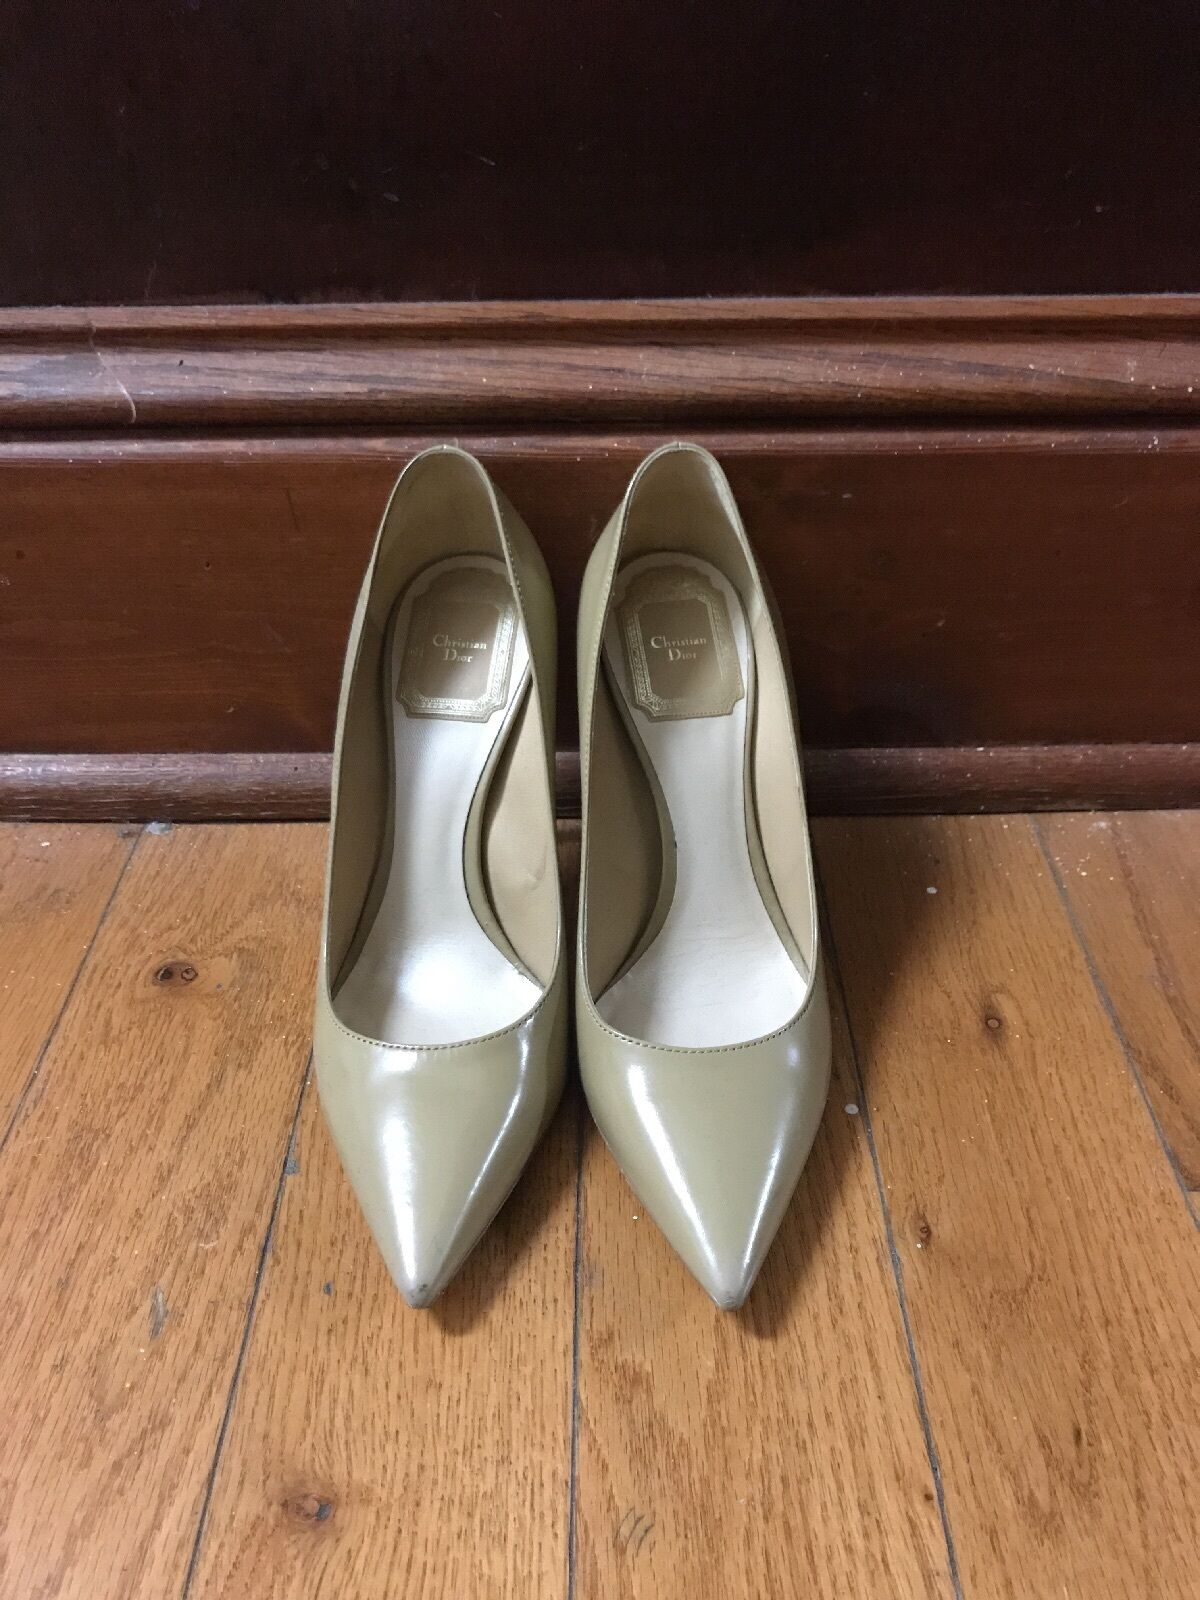 100% Authentic Christian Dior Nude Pumps Size 35.5